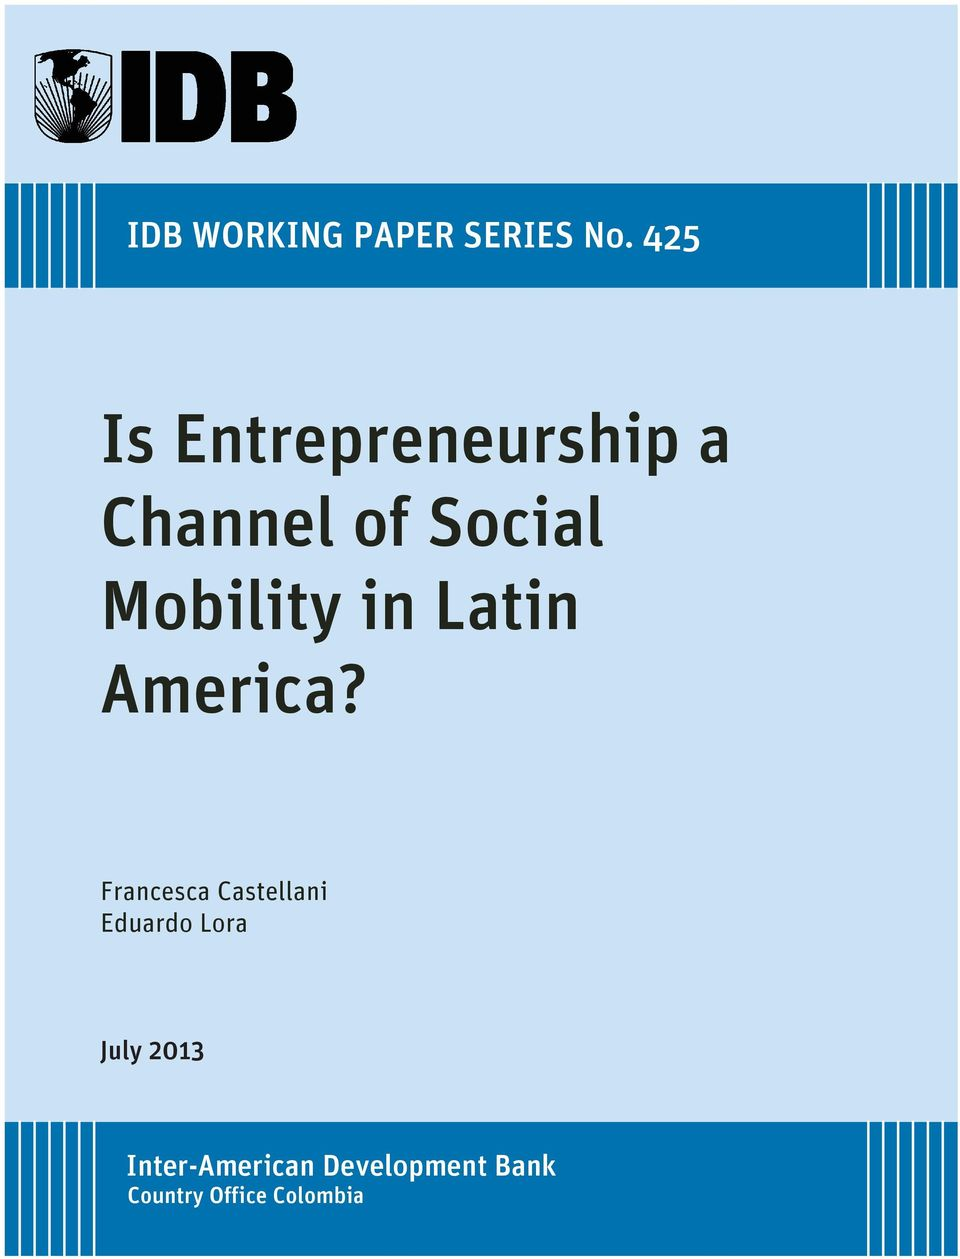 Mobility in Latin America?